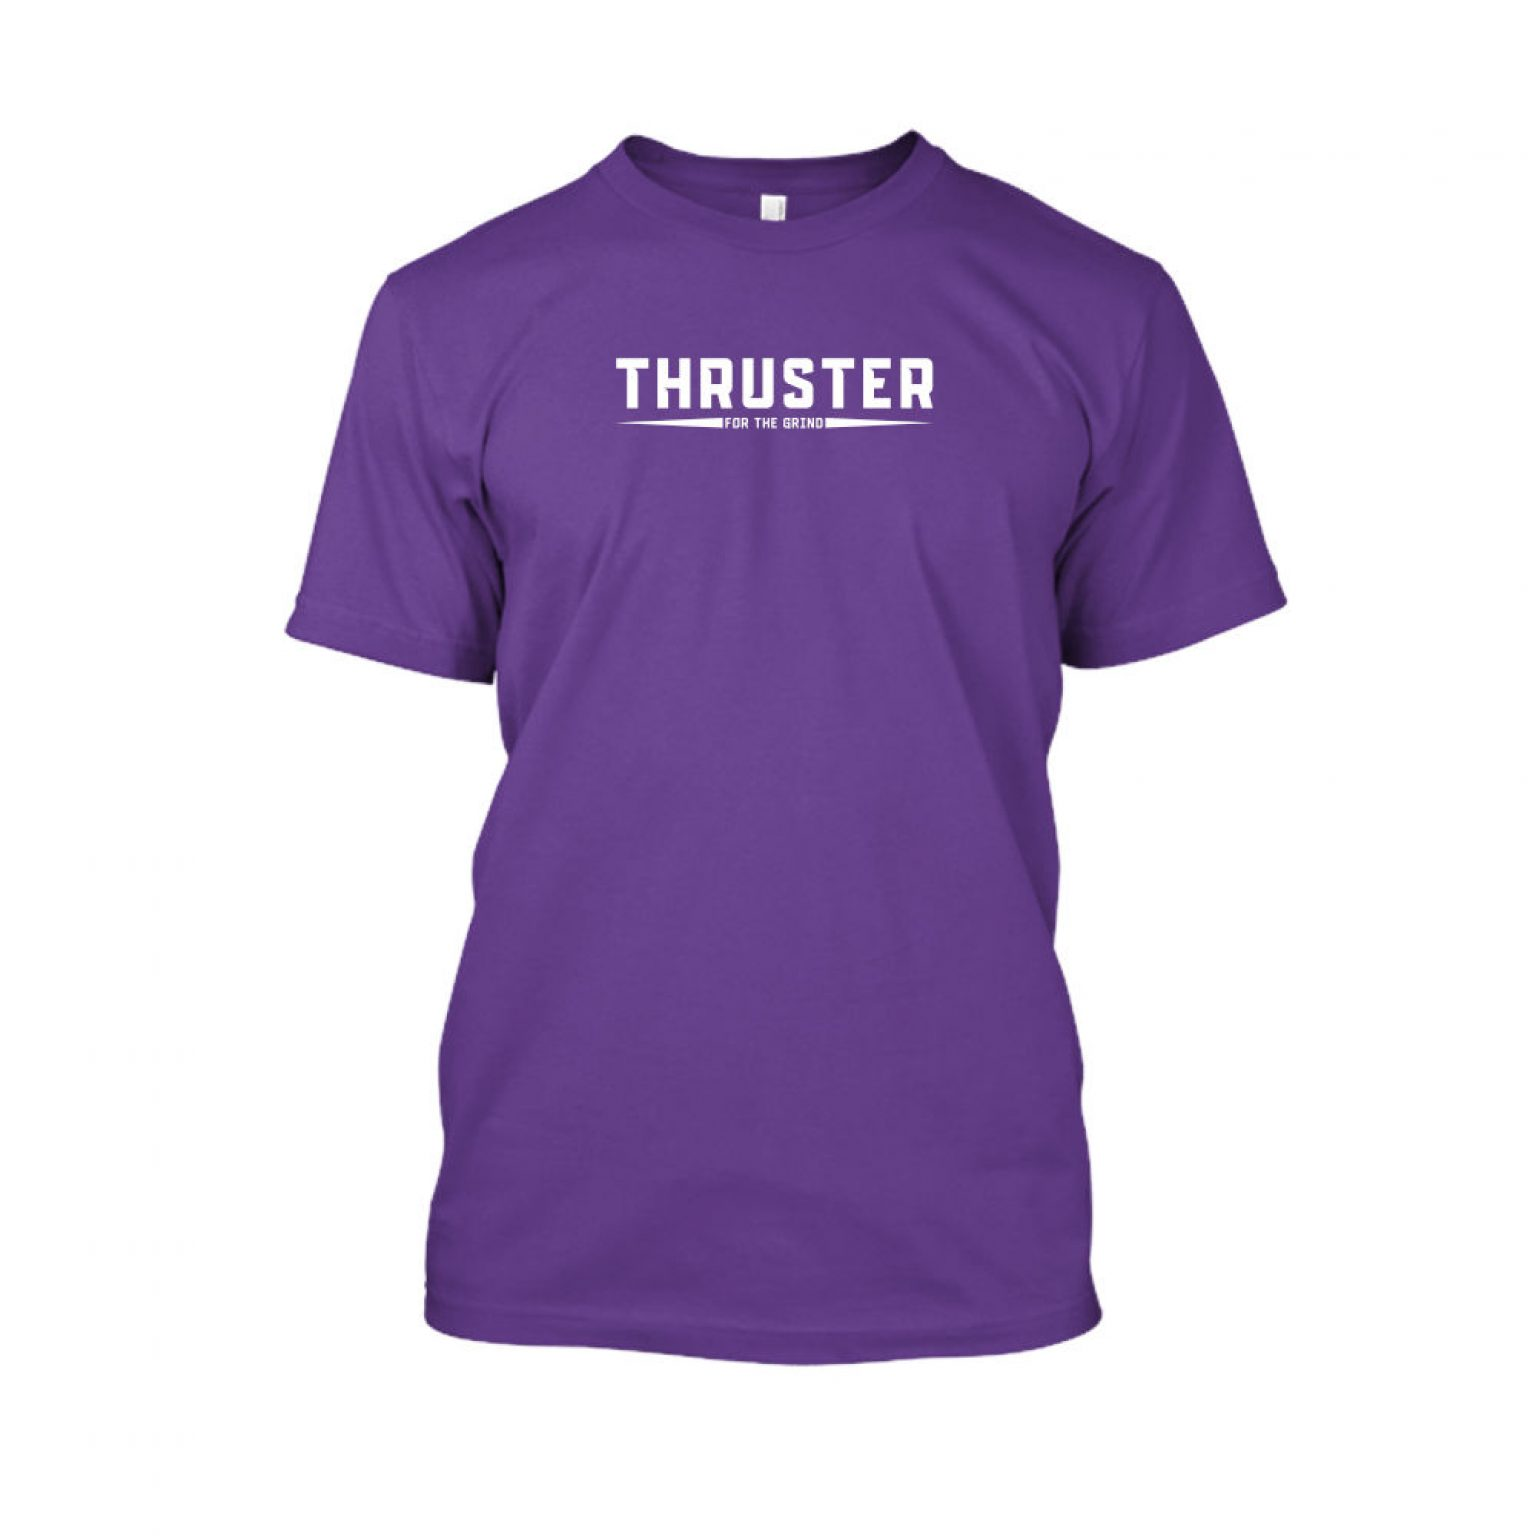 Thruster shirt herren purple